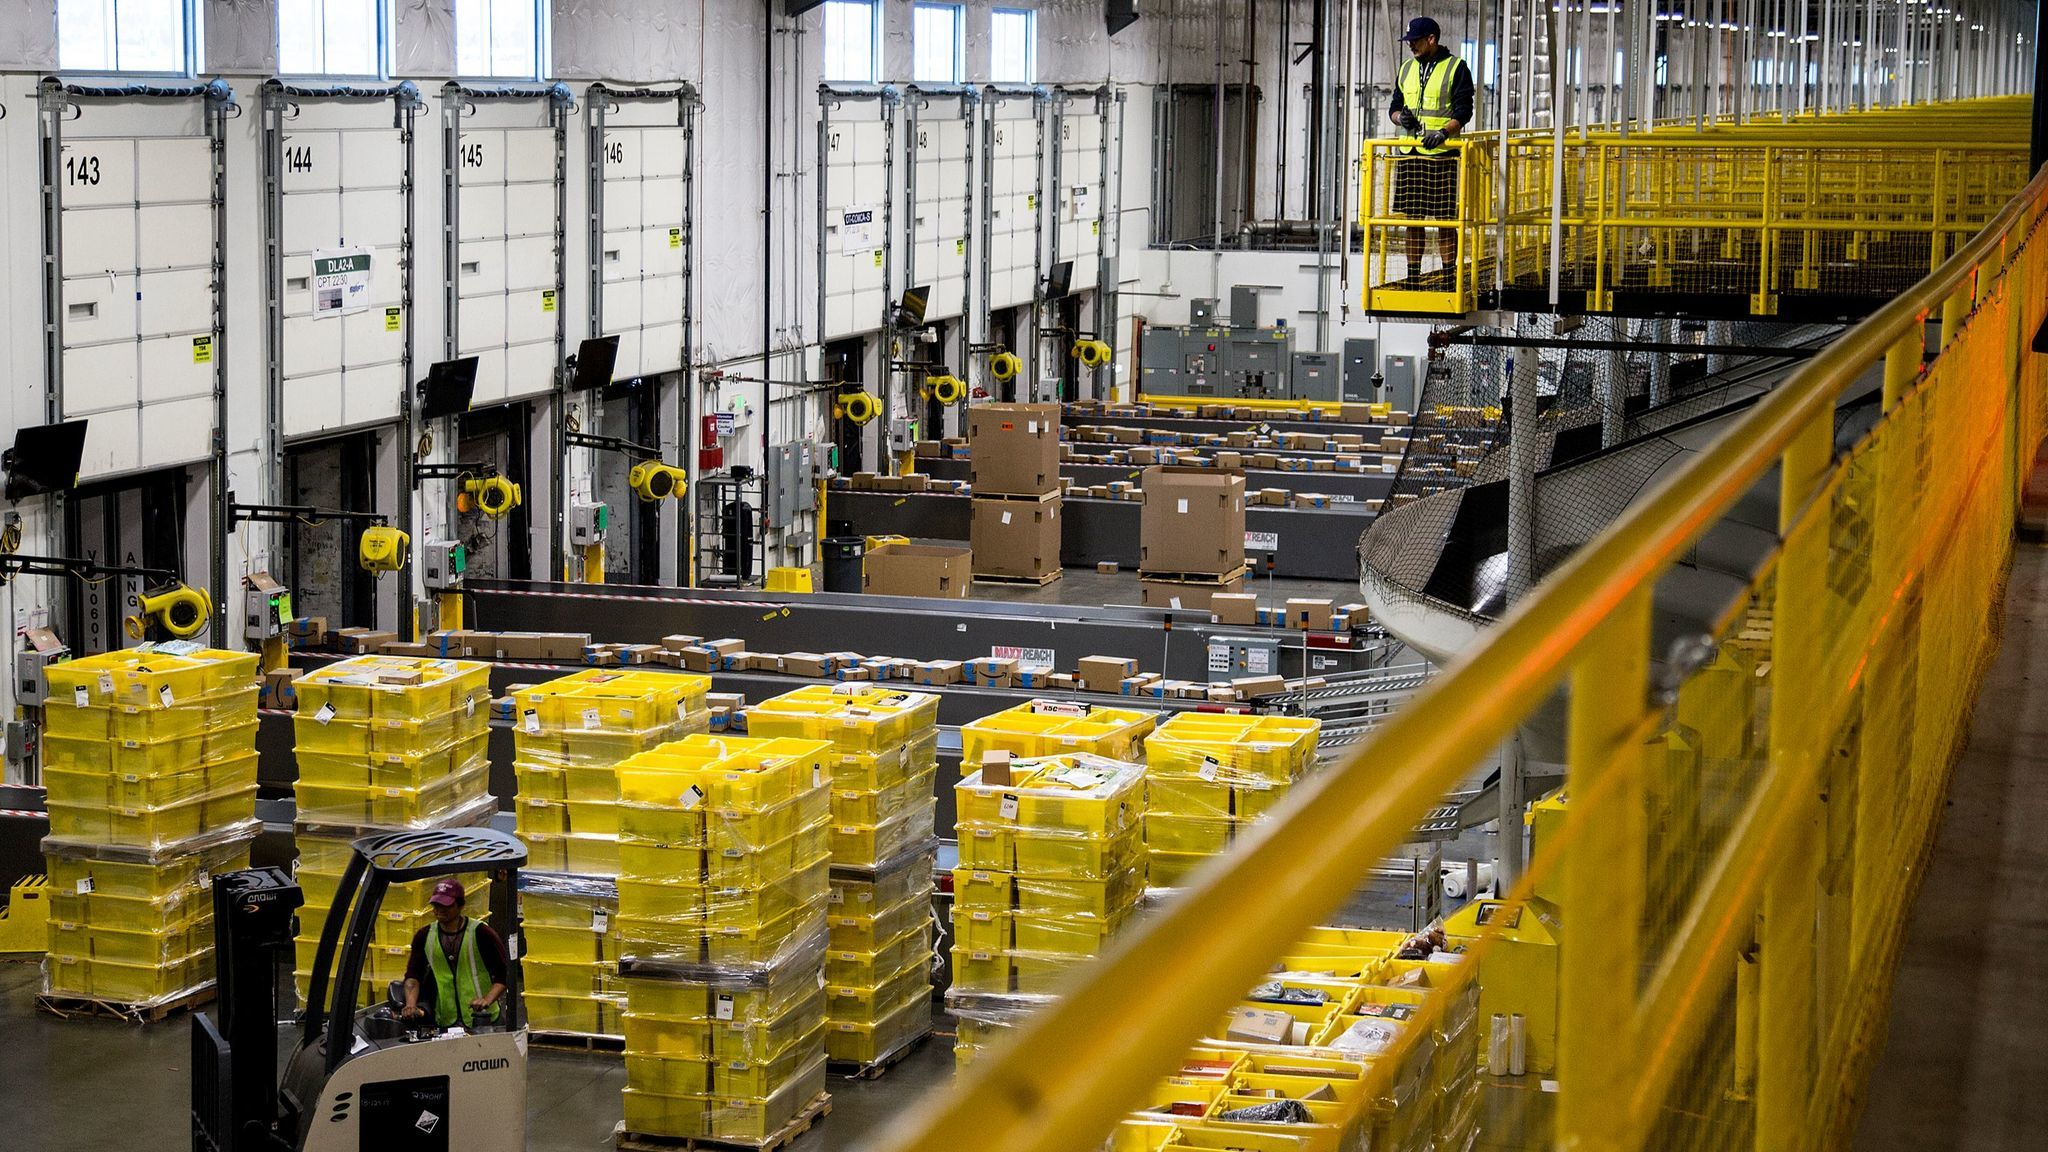 Packages move along a conveyor belt at the Amazon Fulfillment Center in San Bernardino